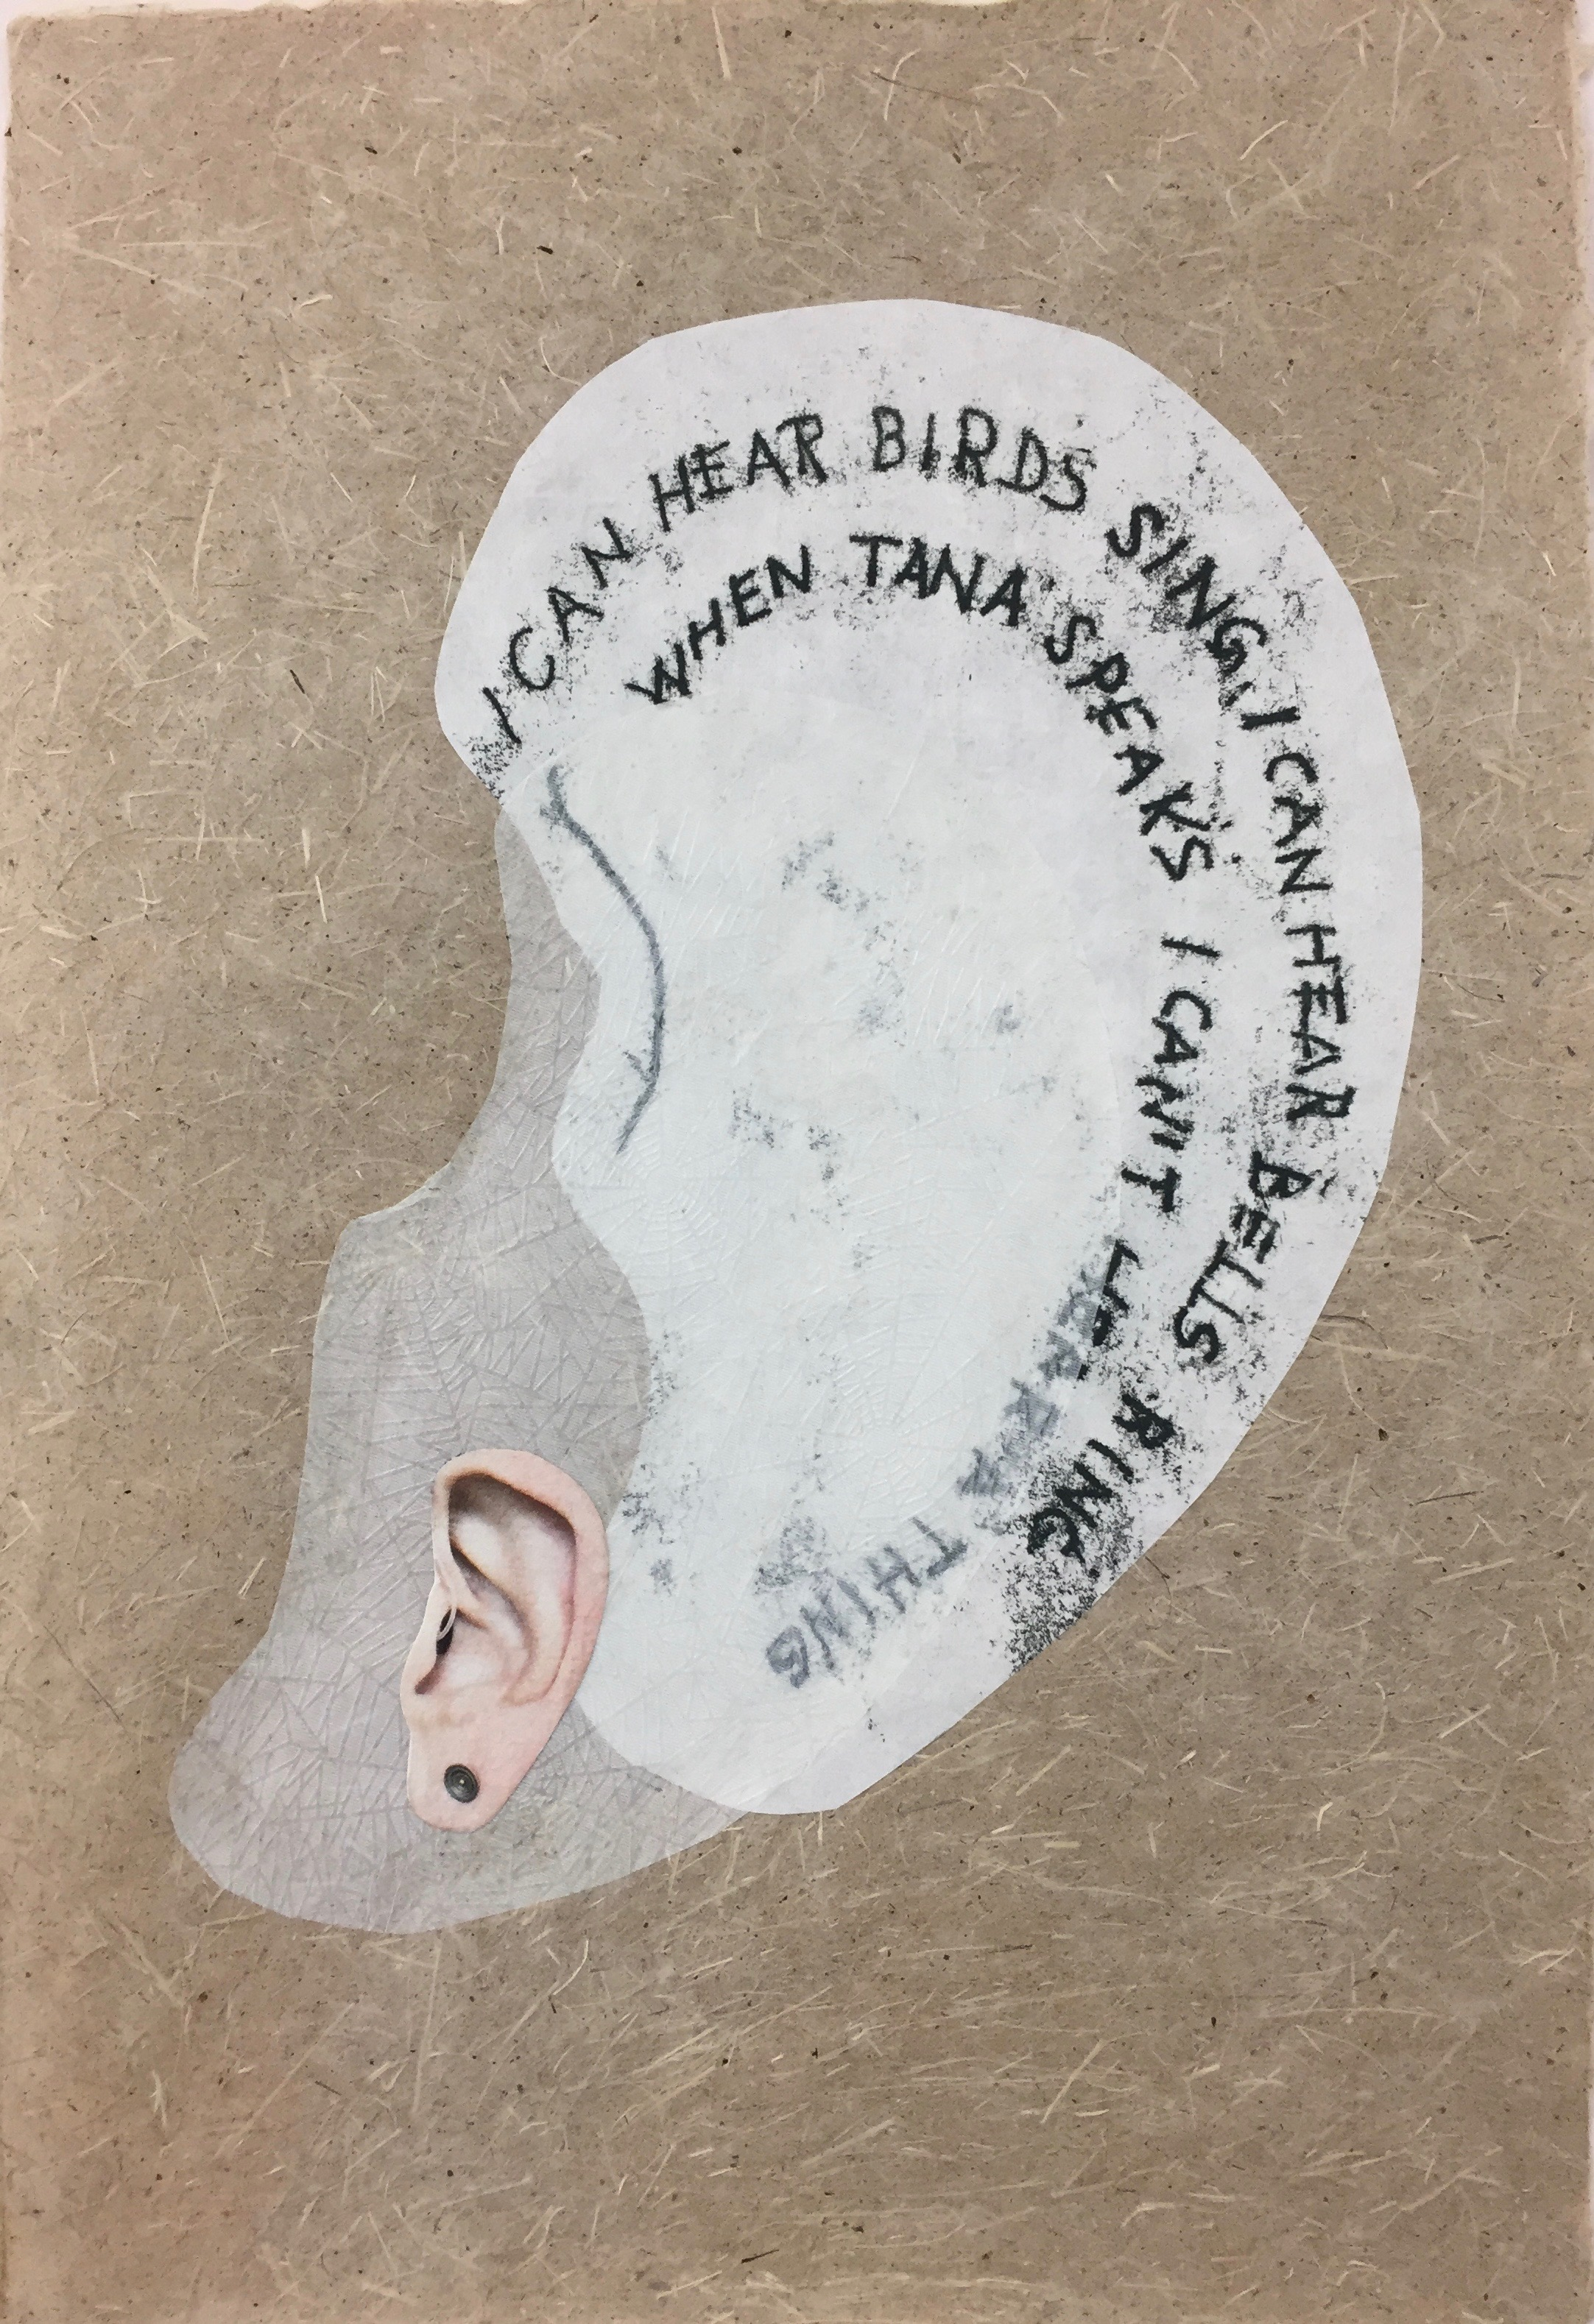 Ear collage